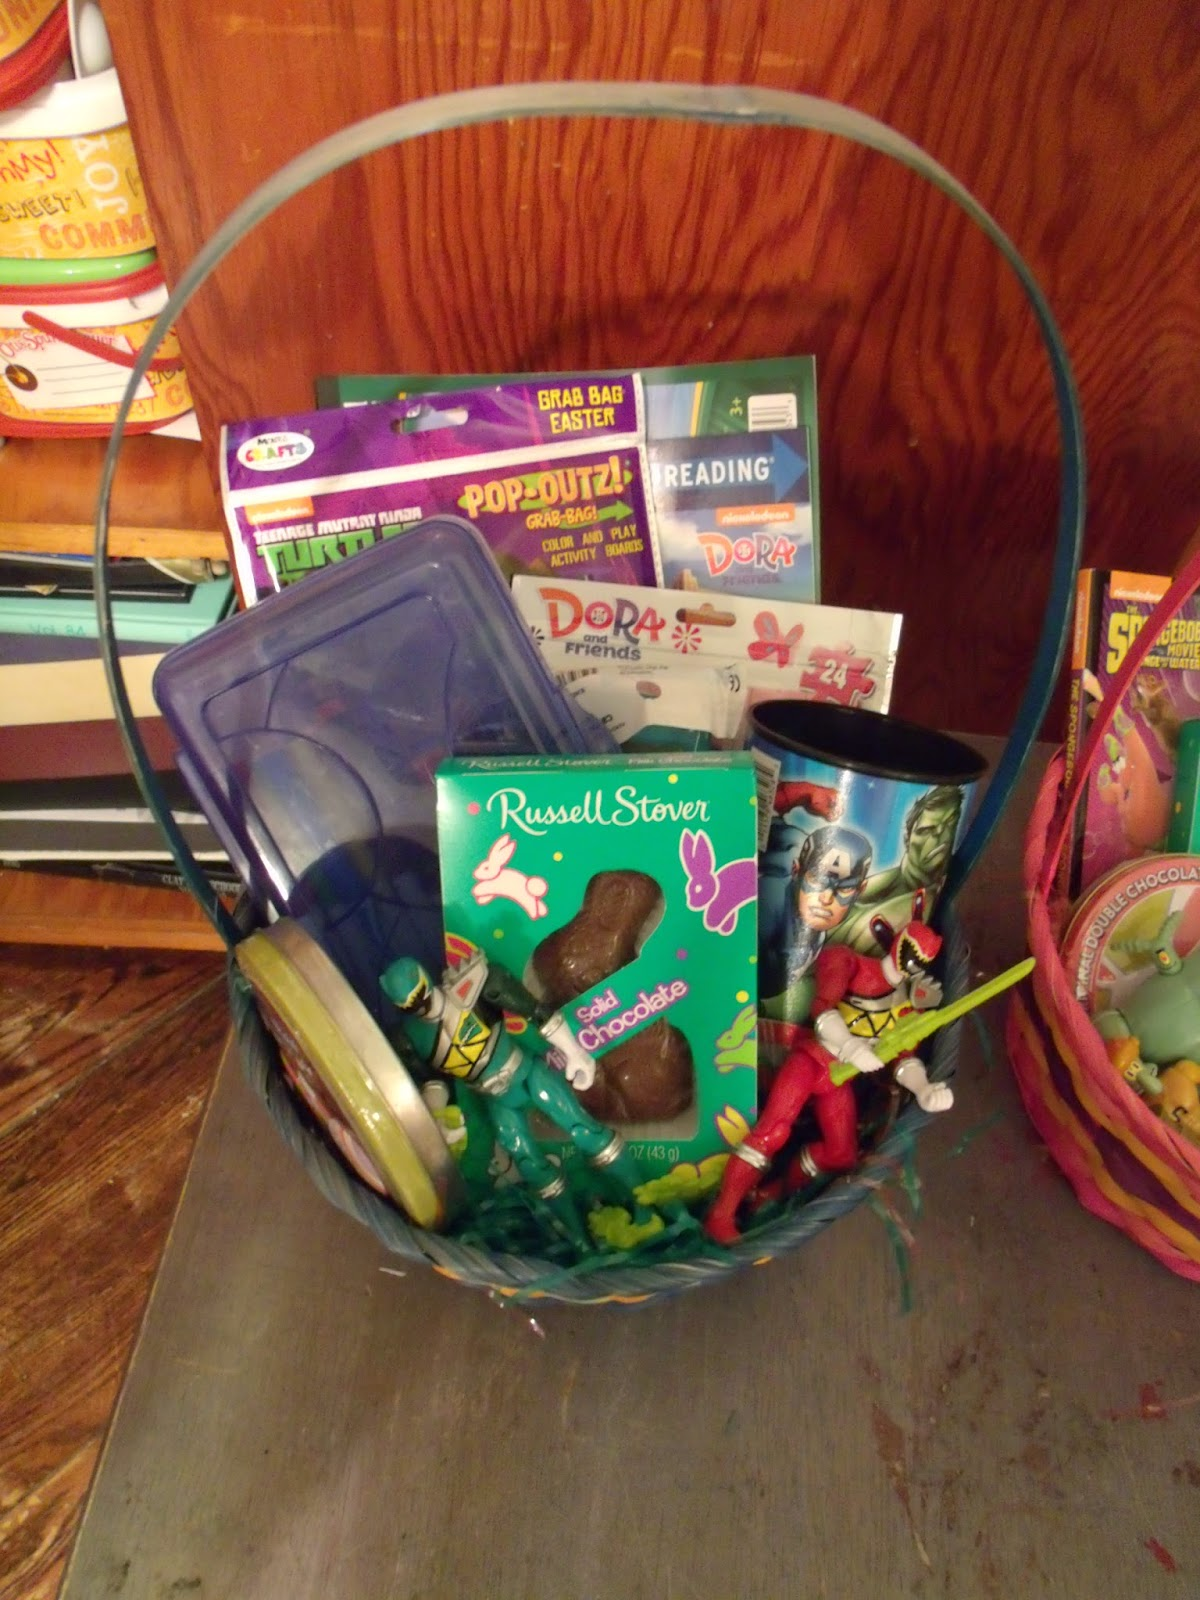 Sunday easter baskets with the kids and dinner with the grandparents rebecca received a small chocolate bunny a spongebob art kit new headbands a spongebob chapter book a cookie a spongebob cup with a few carrot shaped negle Images